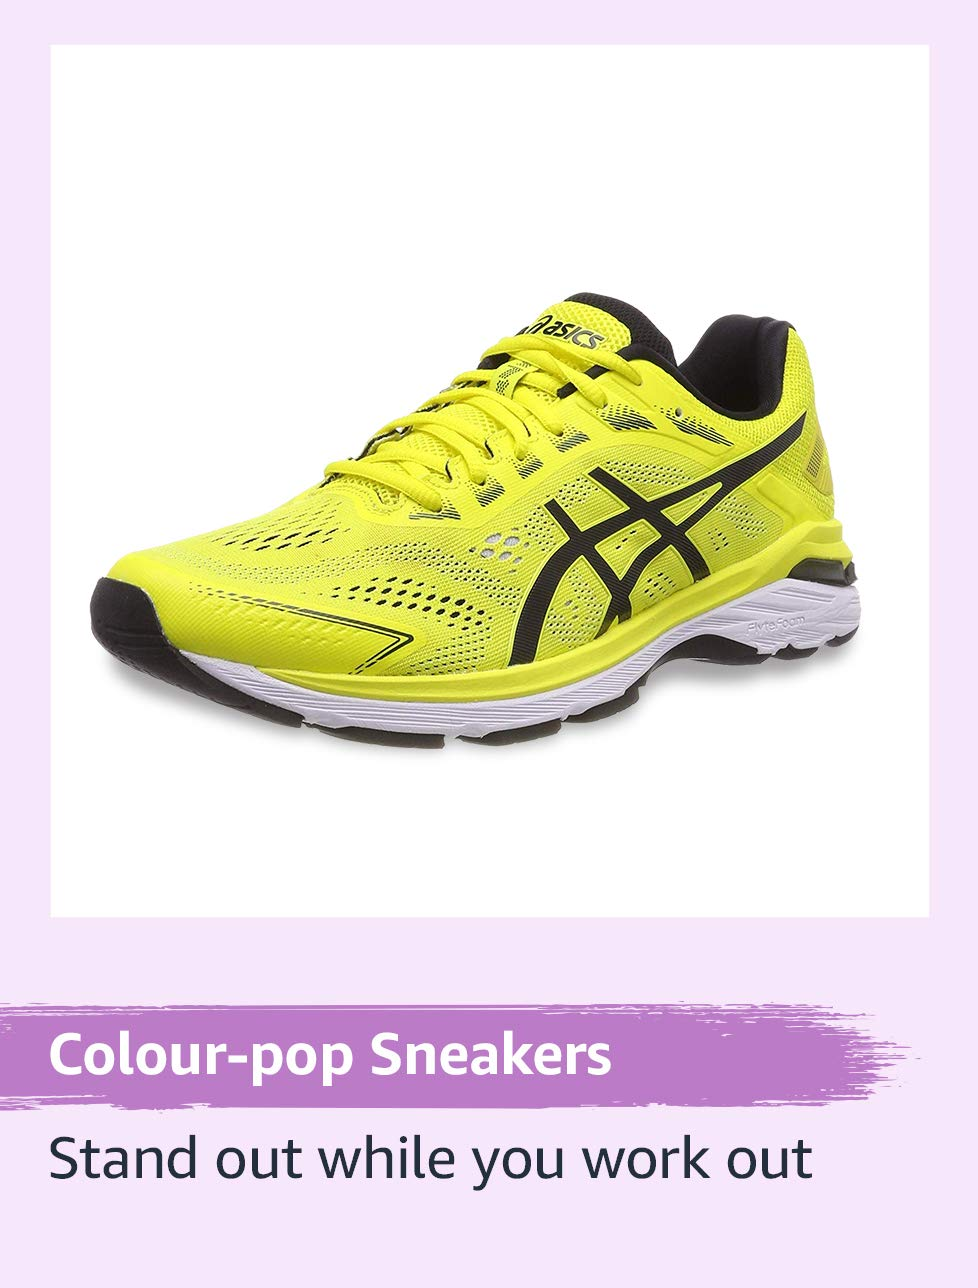 Colour pop sneakers